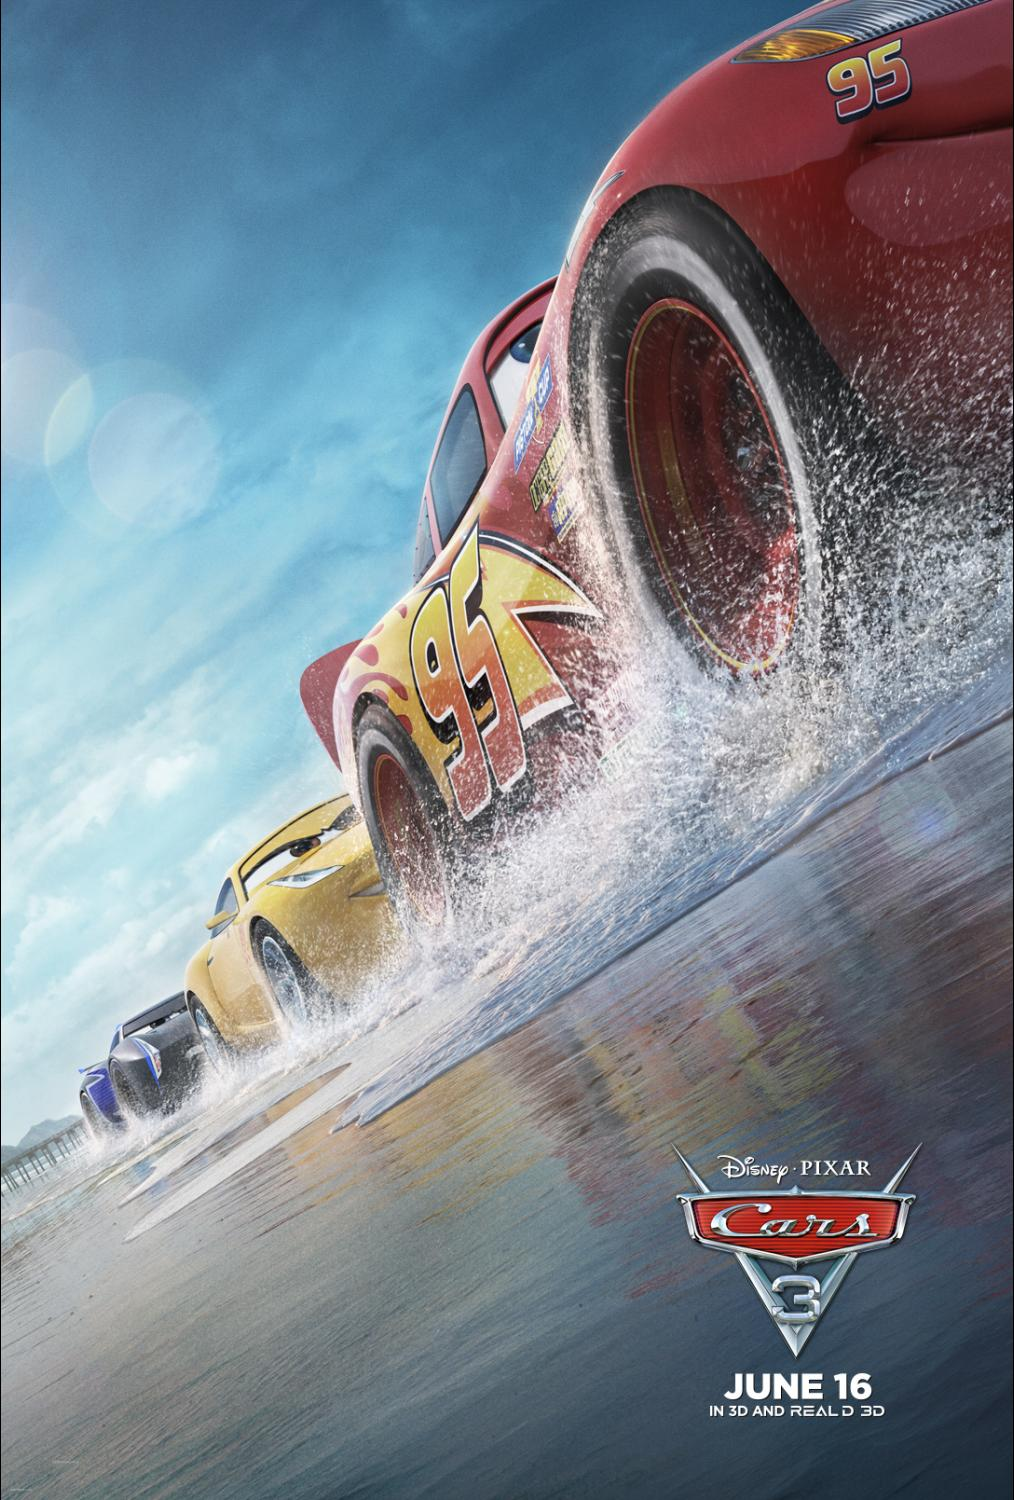 Make sure to Race to Theaters on Friday and see Cars